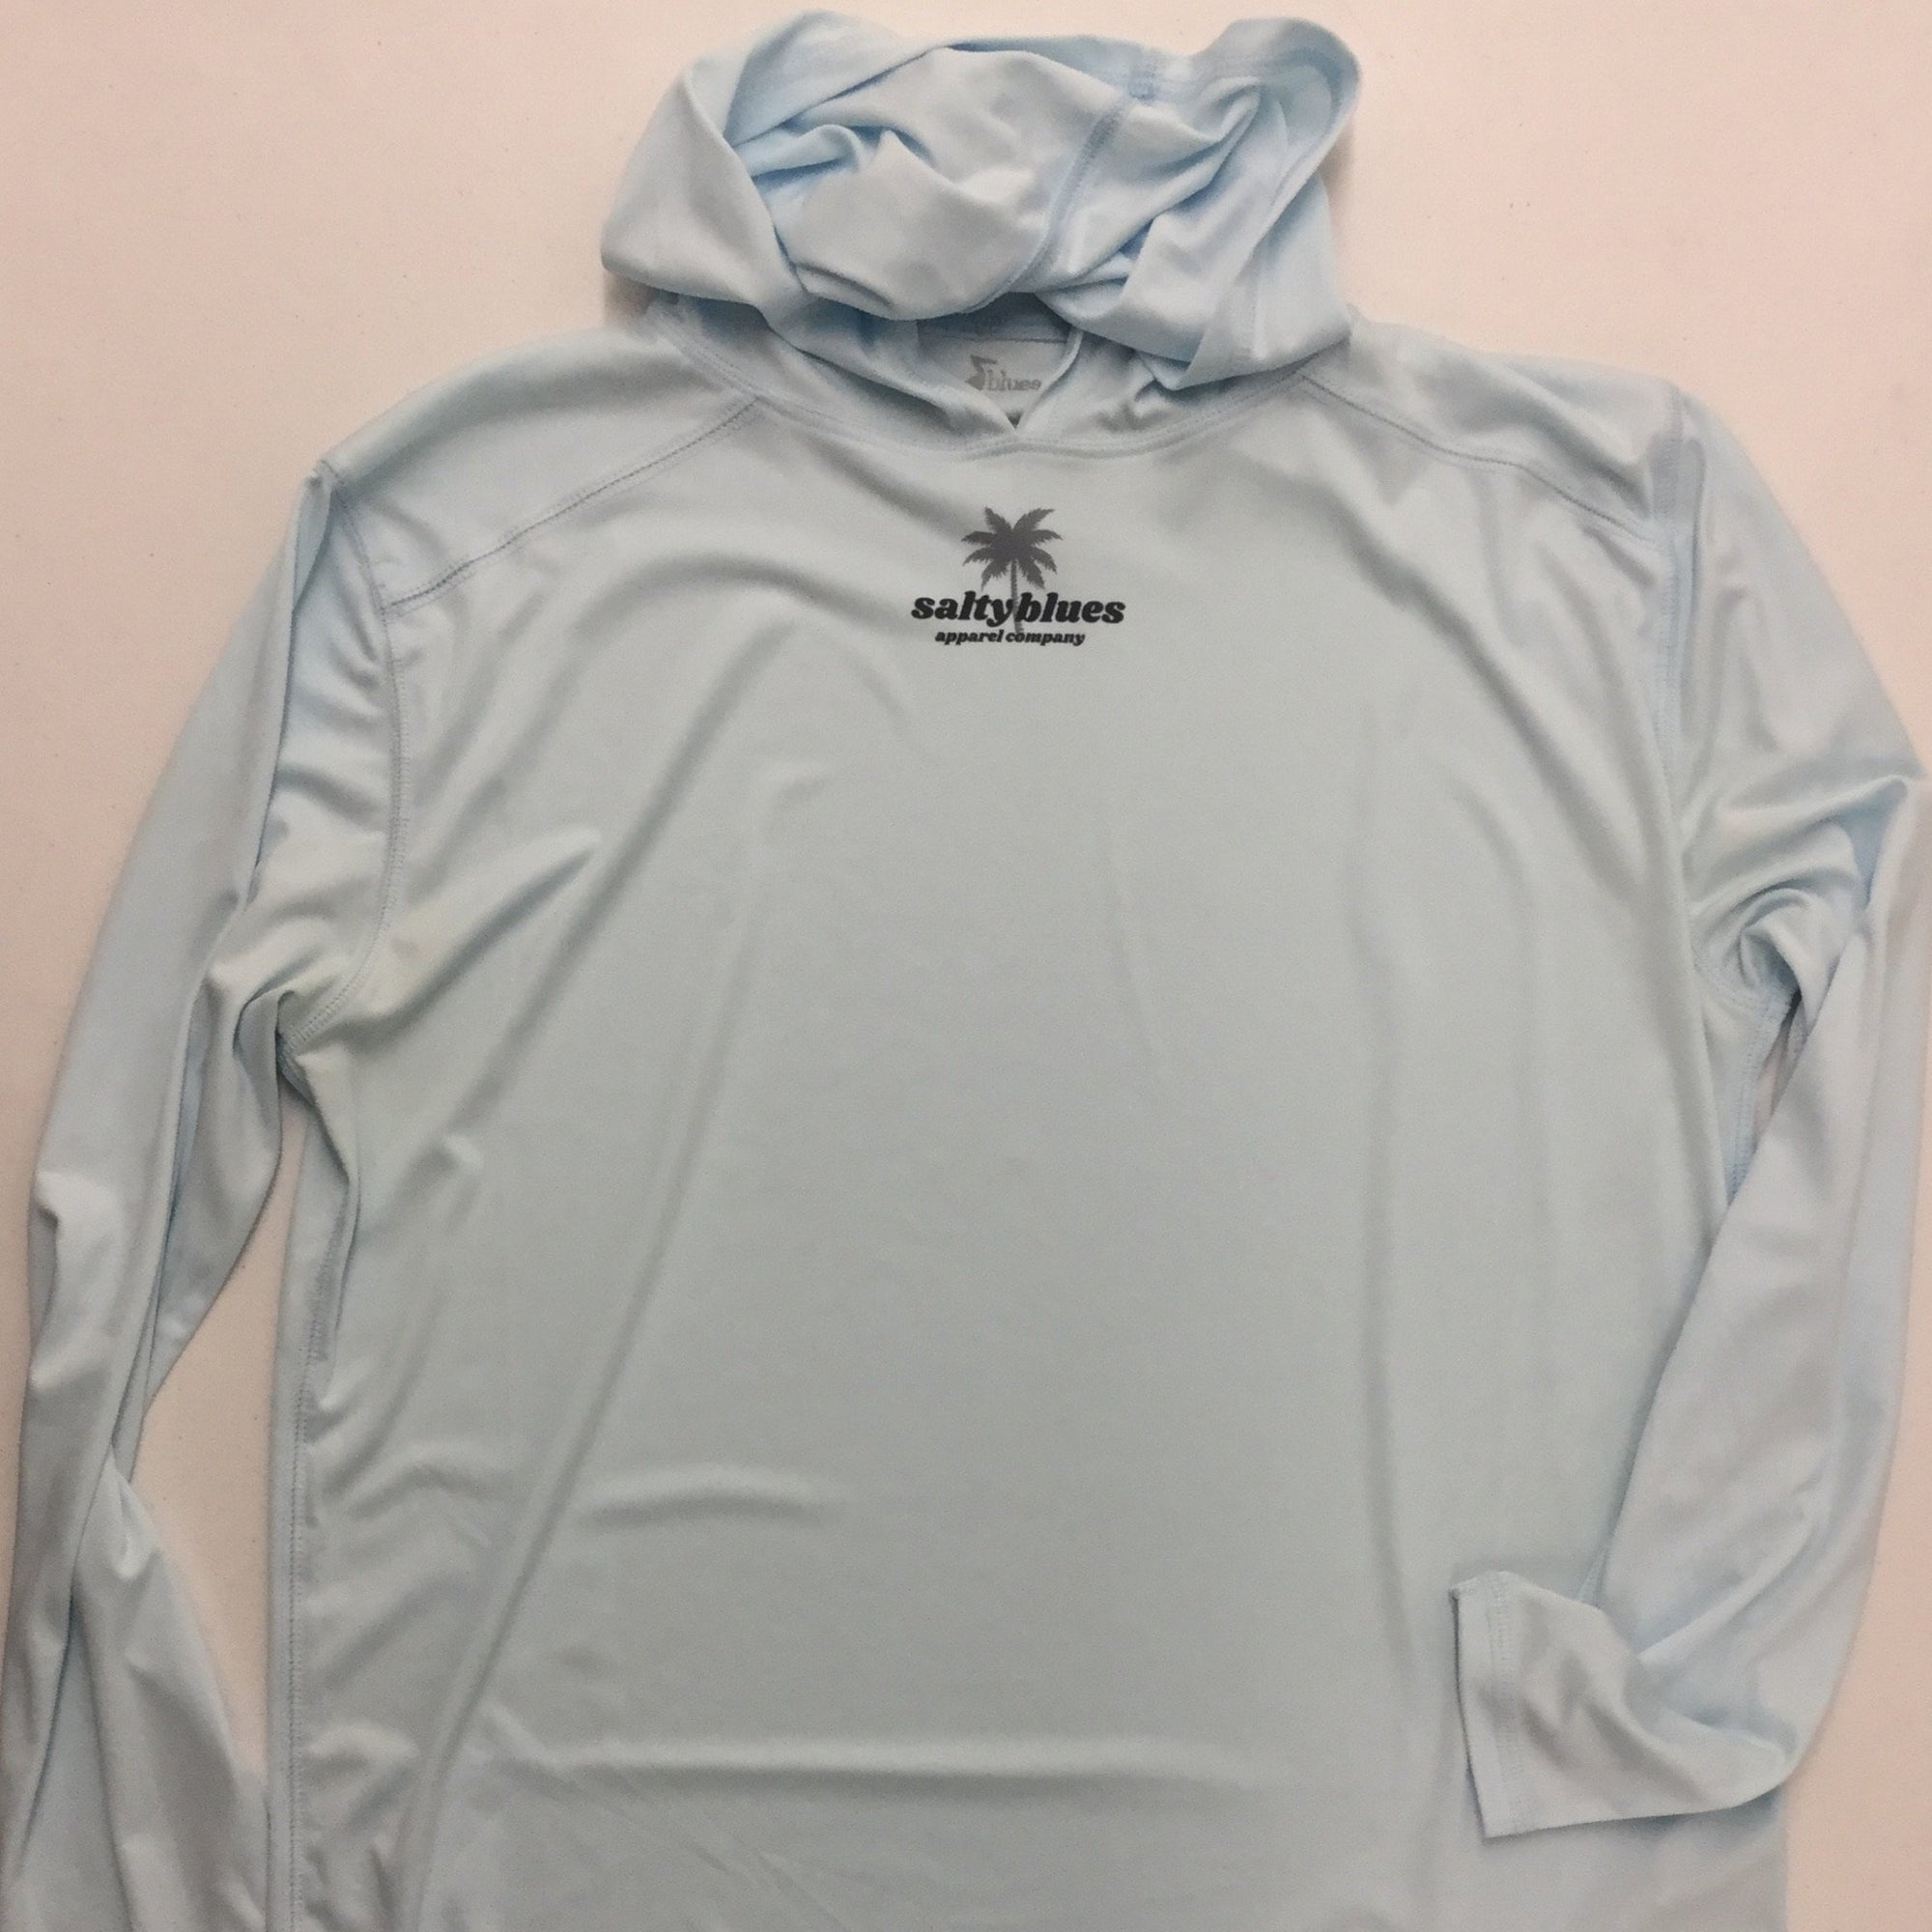 Lone Palm Performance Hoodie (Arctic Blue) - Men's Performance Shirt - Latitudes & Attitudes LLC